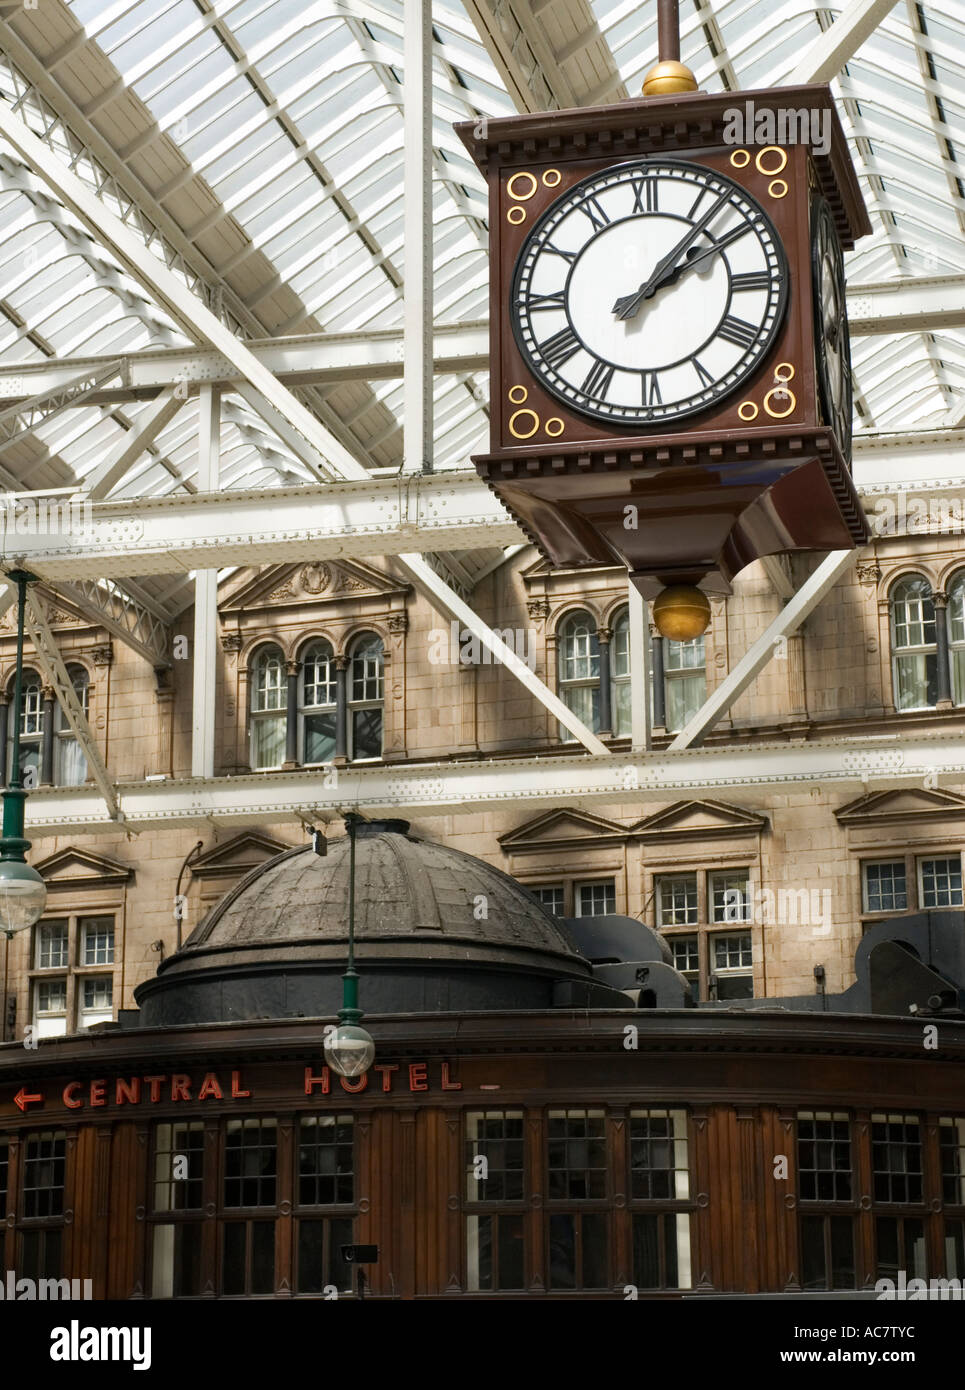 Ornate old clock inside Central railway station with Central Hotel to rear in Glasgow Scotland - Stock Image